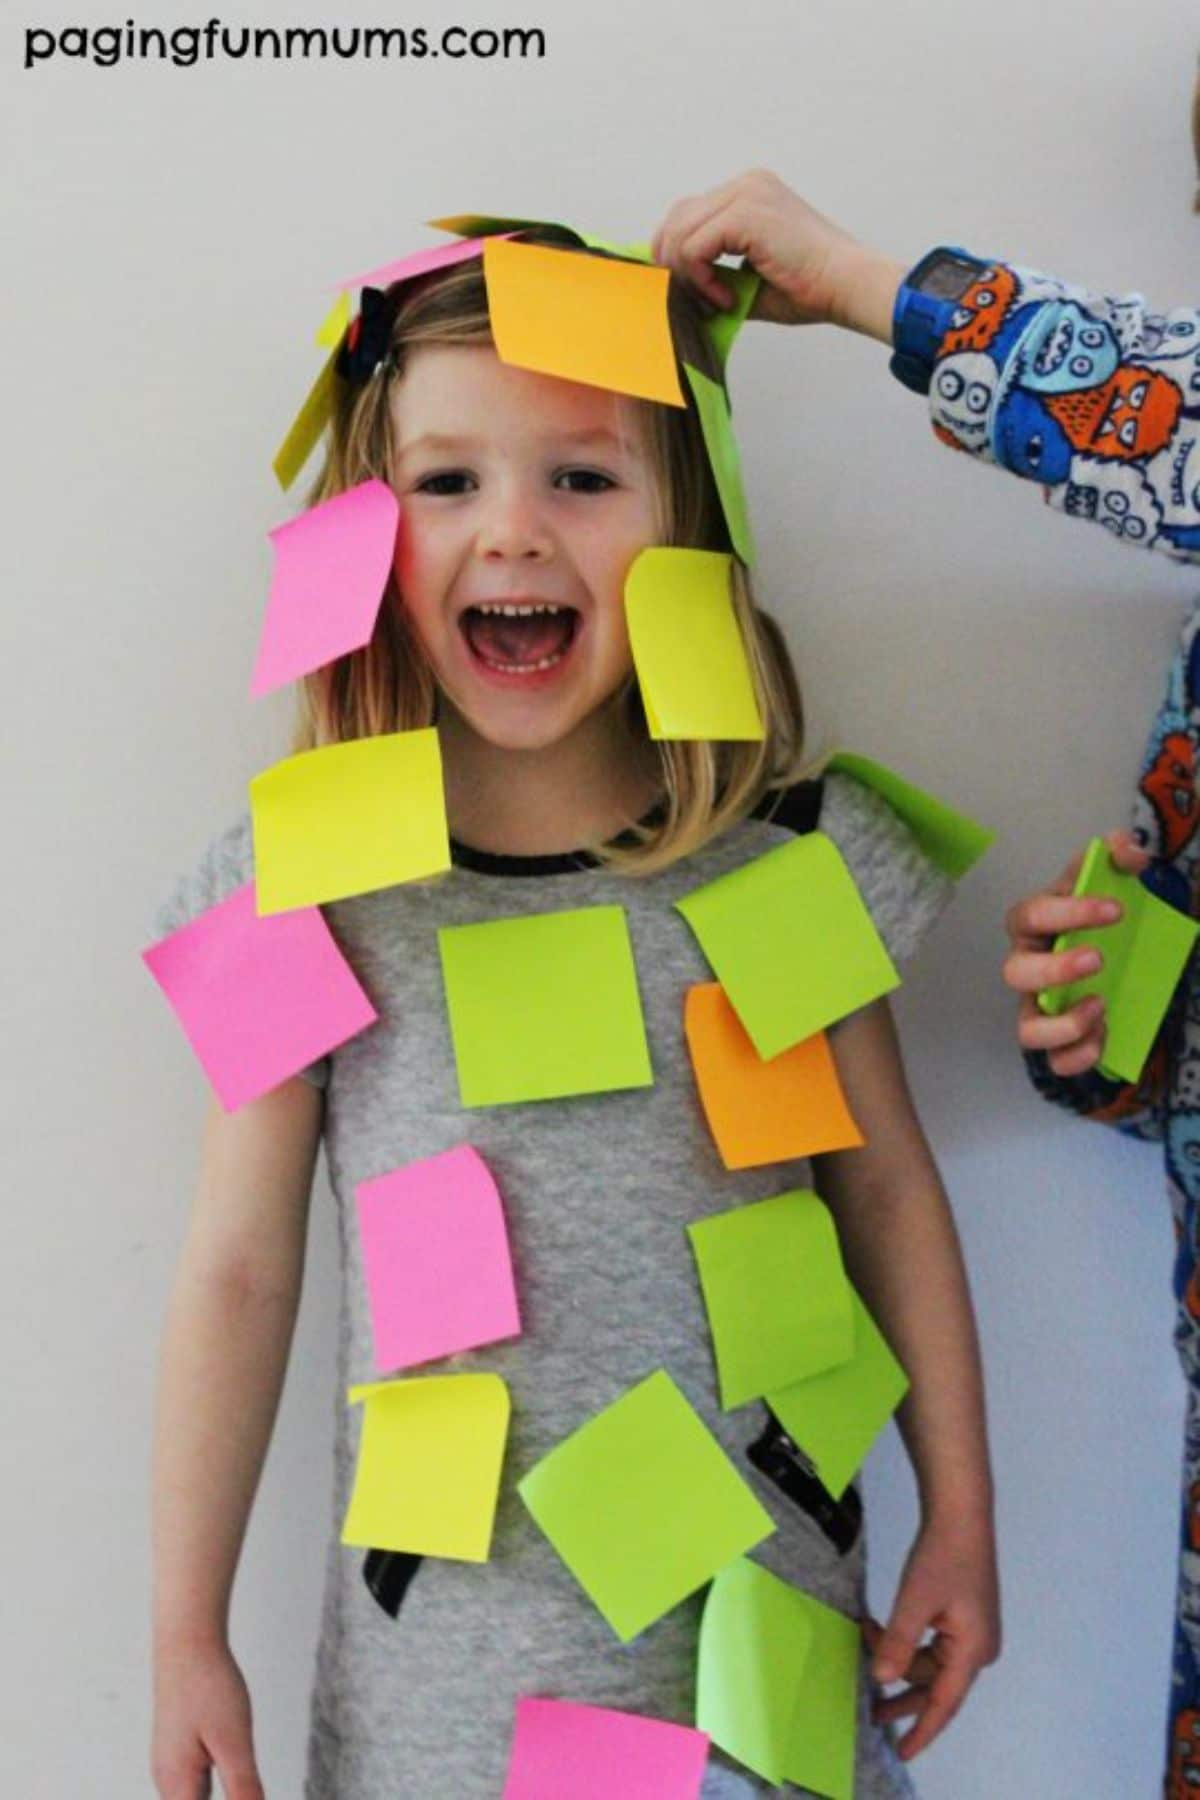 a girl wearing a grey dress is covered in coored post it notes. A hand apperared from the right hand side of the frame placing another post it note on her head